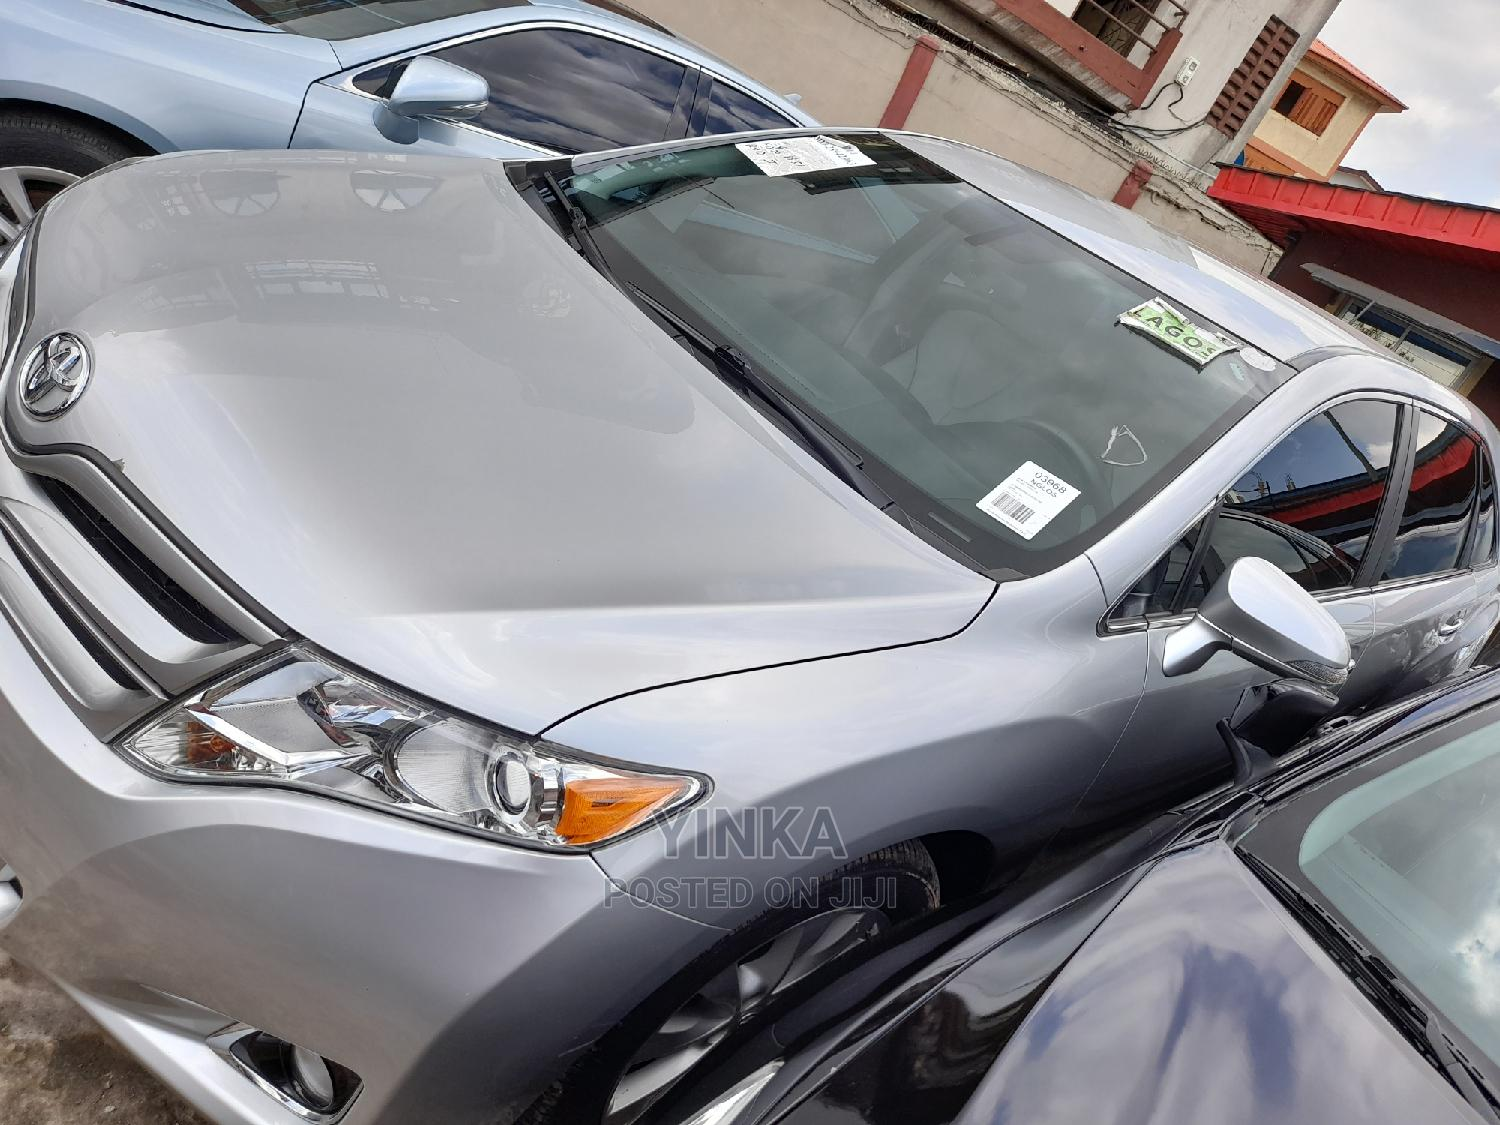 Toyota Venza 2013 XLE AWD V6 Silver   Cars for sale in Ikeja, Lagos State, Nigeria